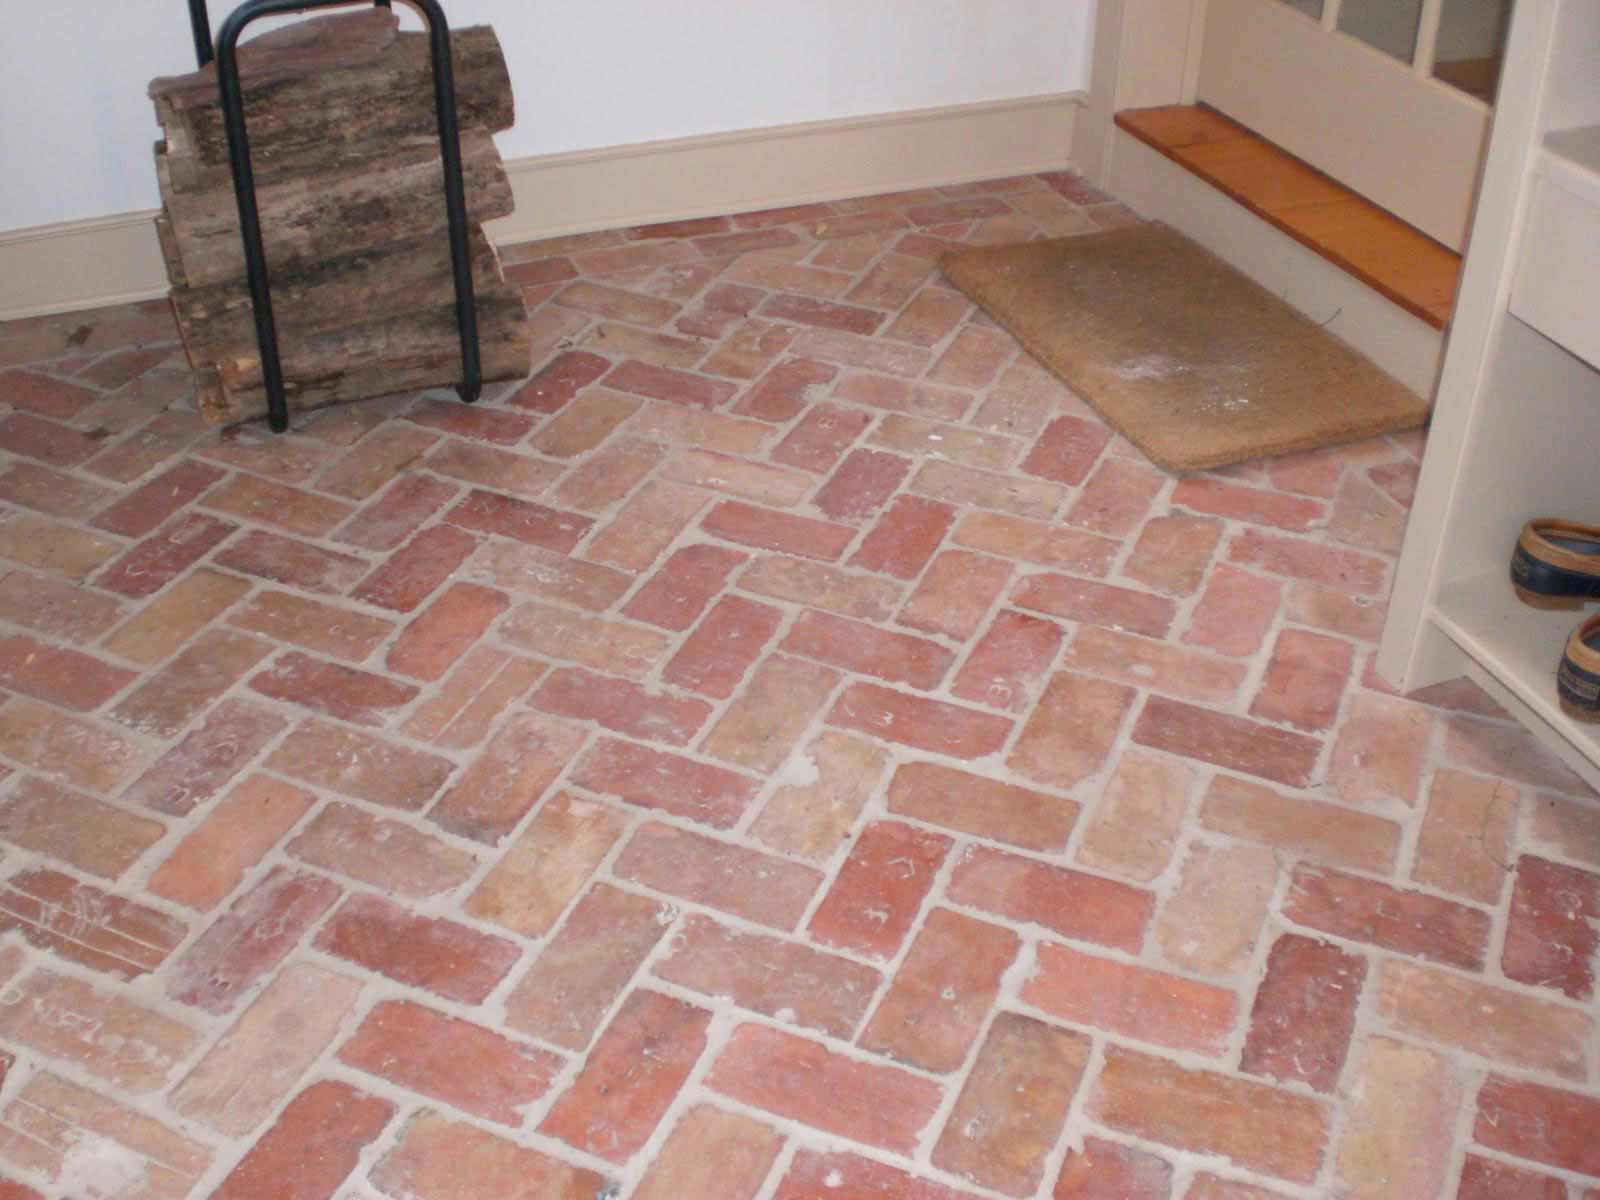 Linoleum Flooring Lowes >> Brick Tile Flooring for Your Home